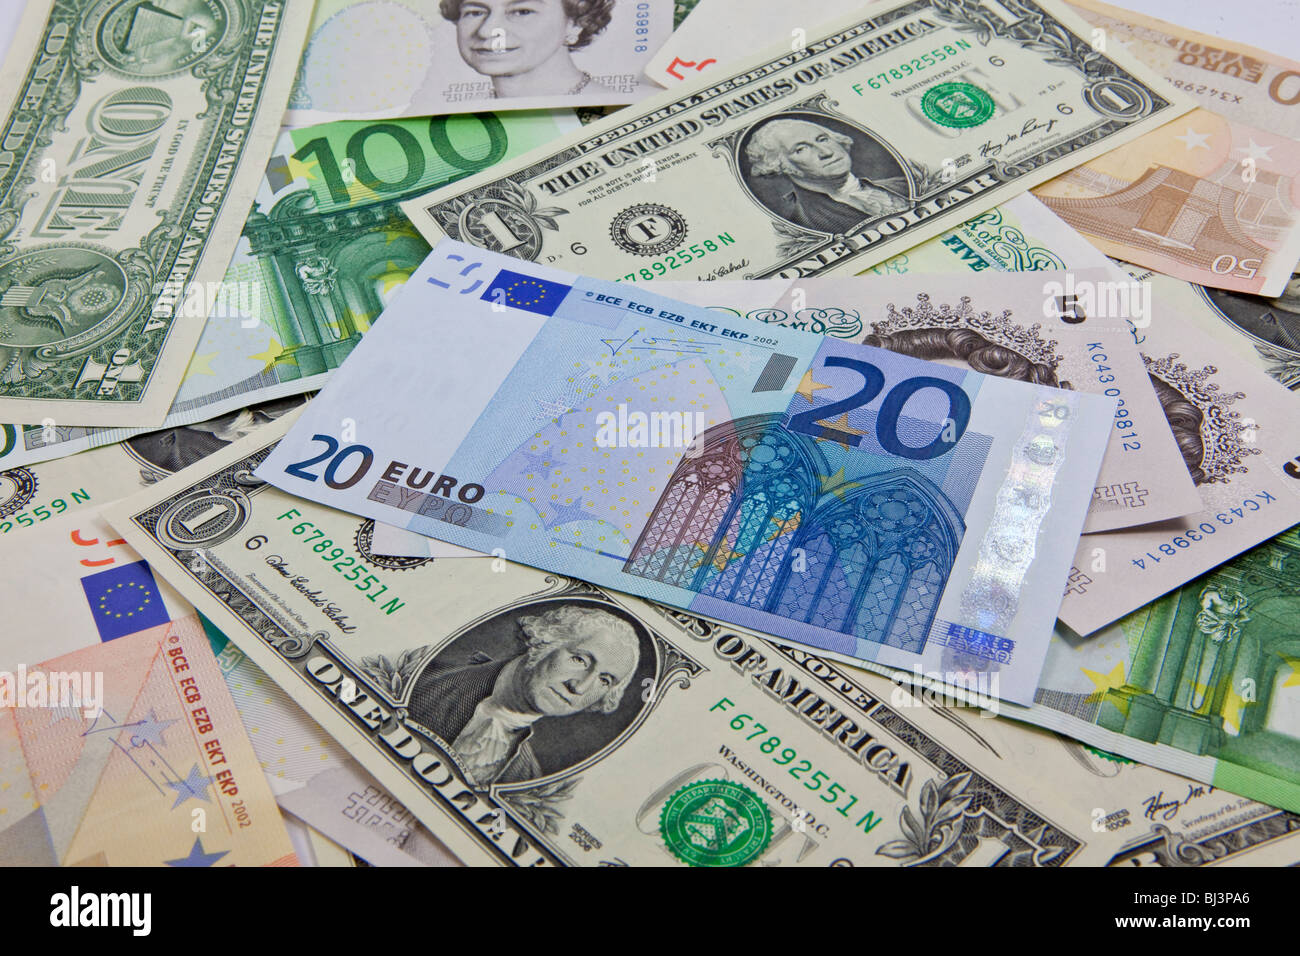 A mixture of bank notes, U.S. dollars, euros and British pounds - Stock Image